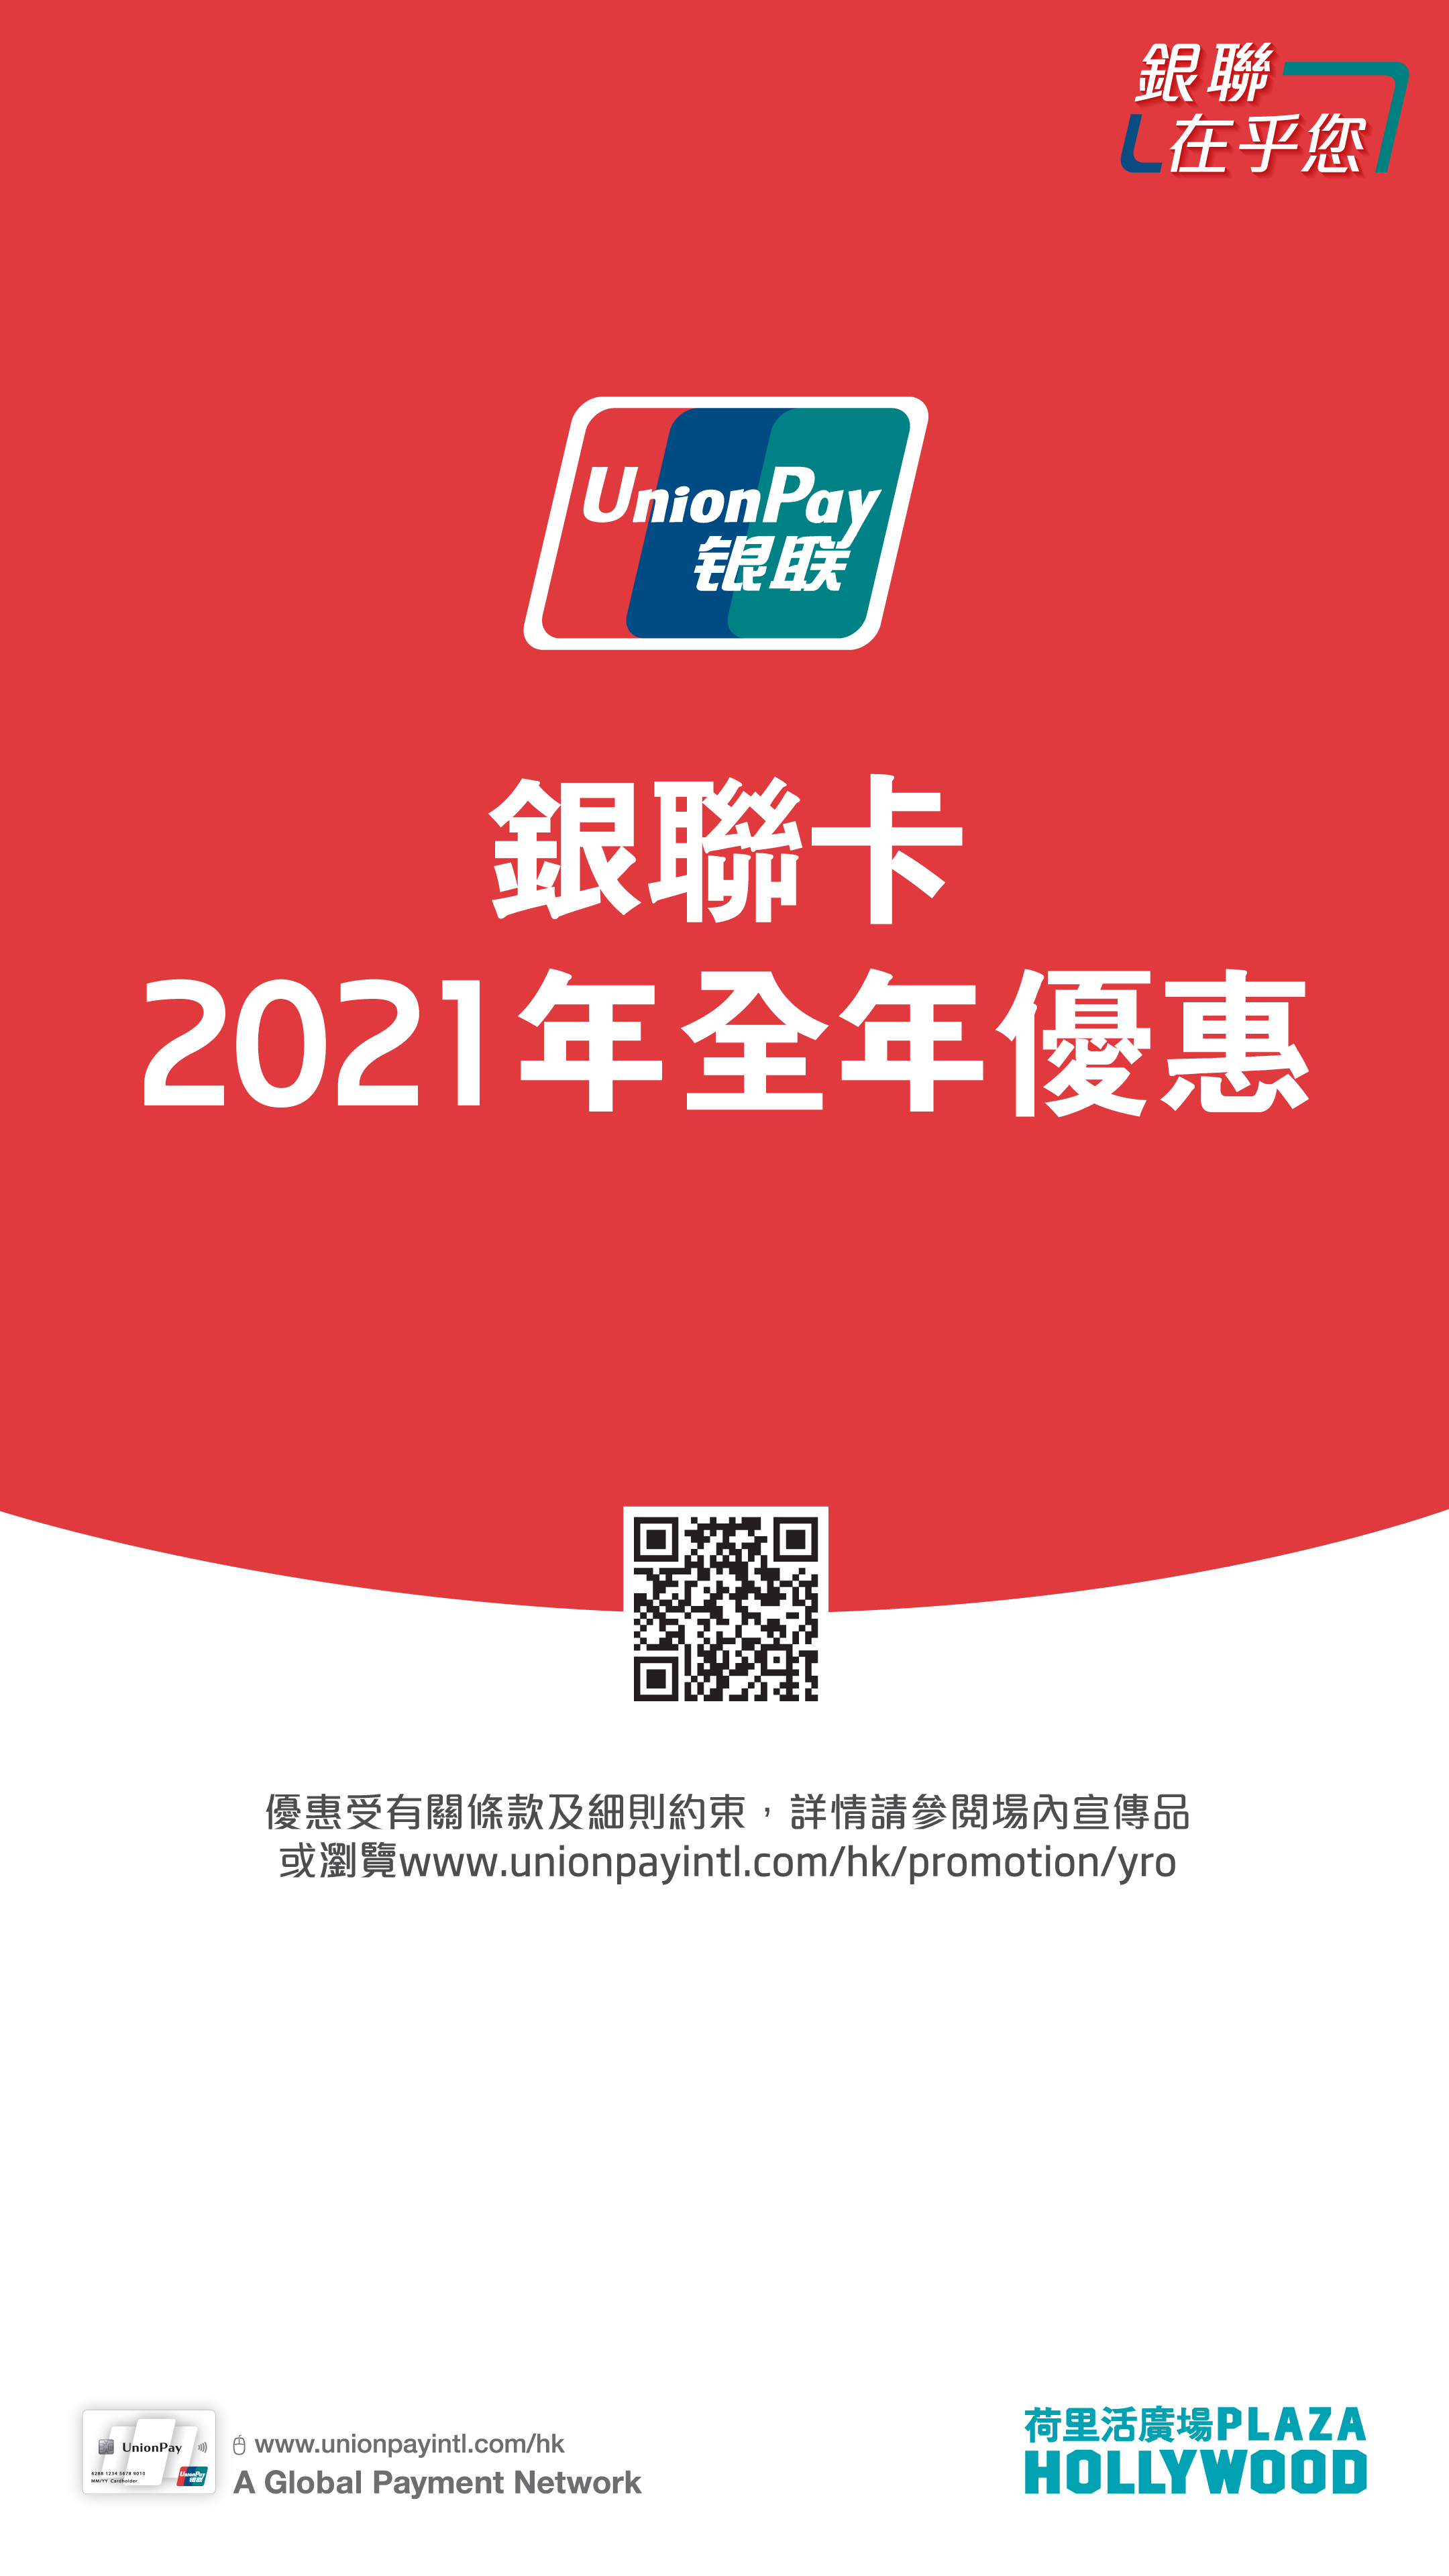 Shopping Privileges with UnionPay Card